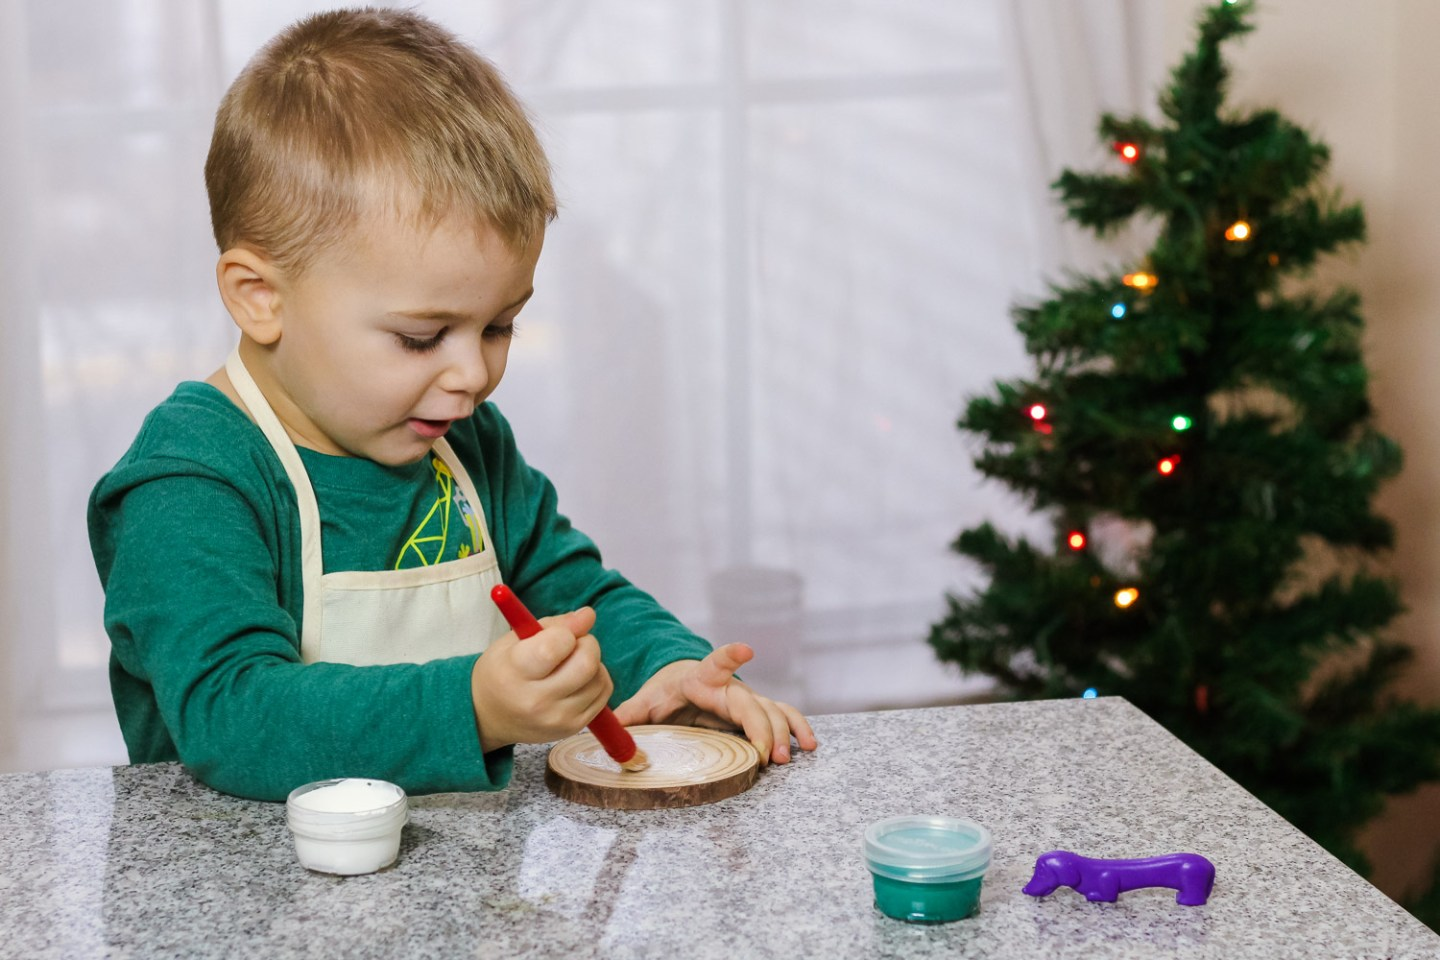 Toddler Christmas Ornaments_Toddler painting wood slice white